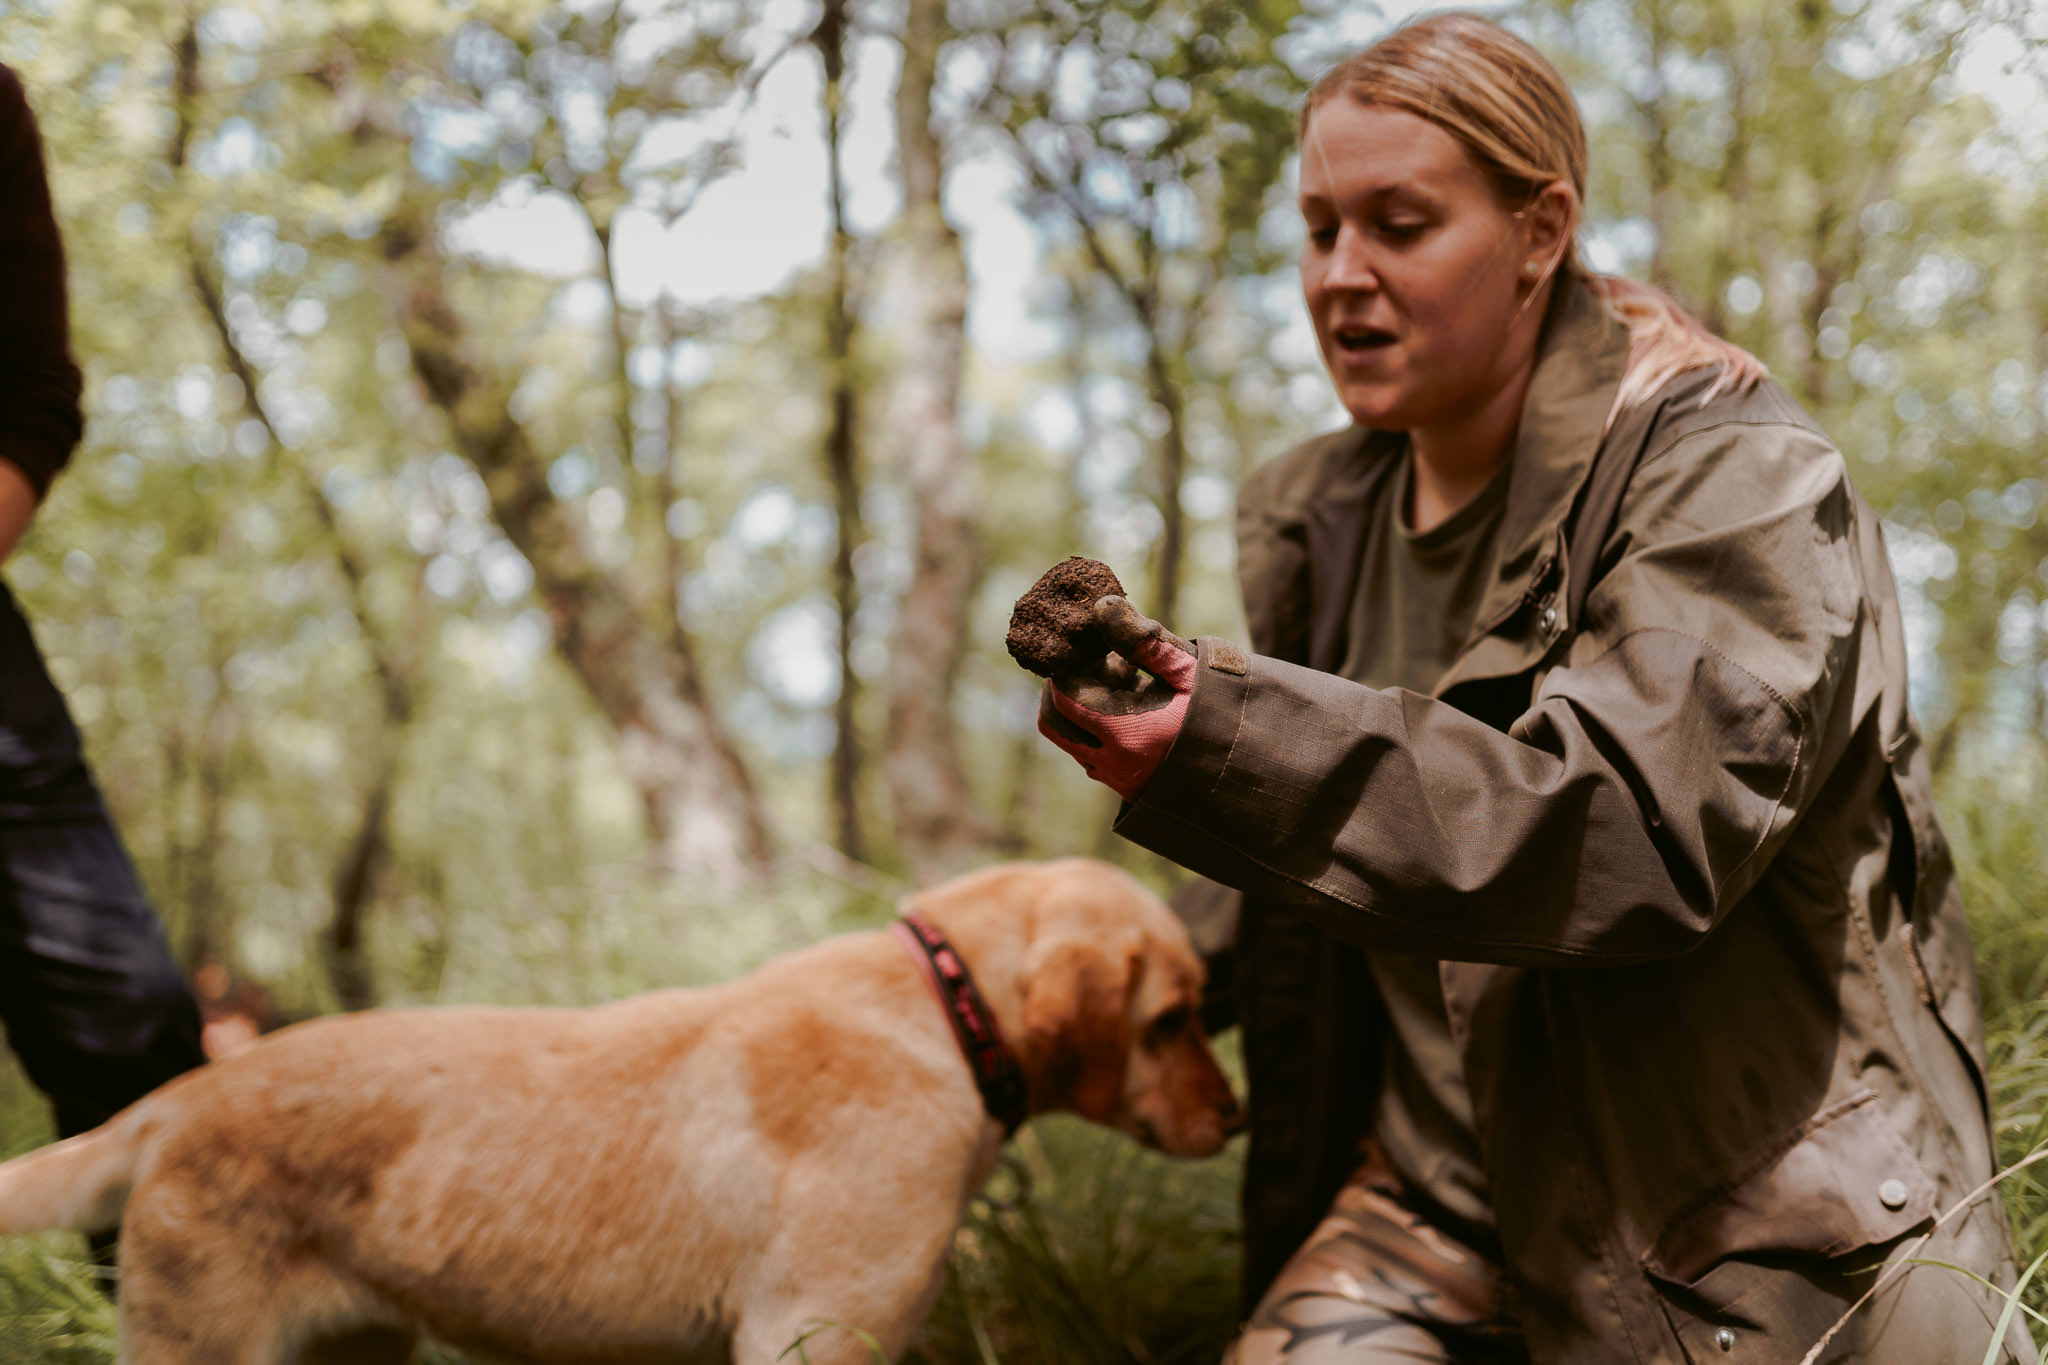 Woman digging for truffles with dog